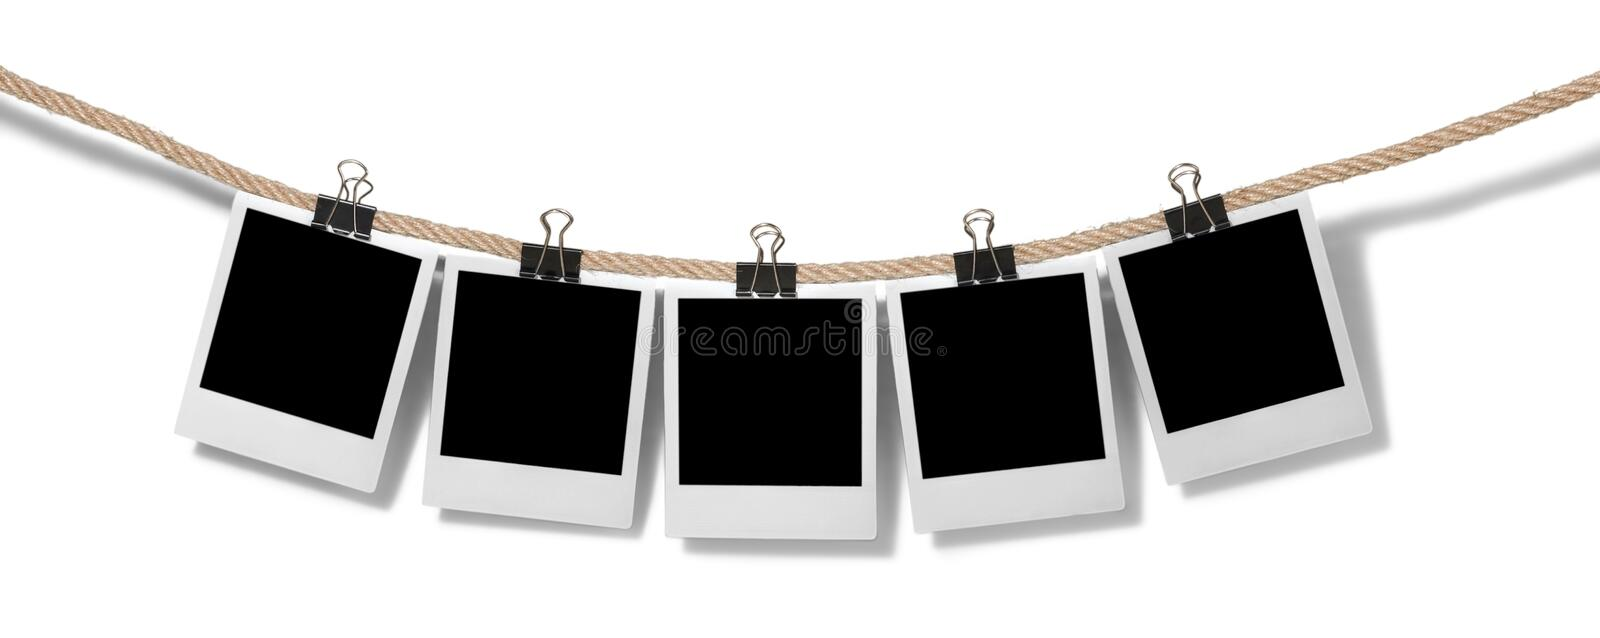 Blank instant photos hanging on the clothesline stock images